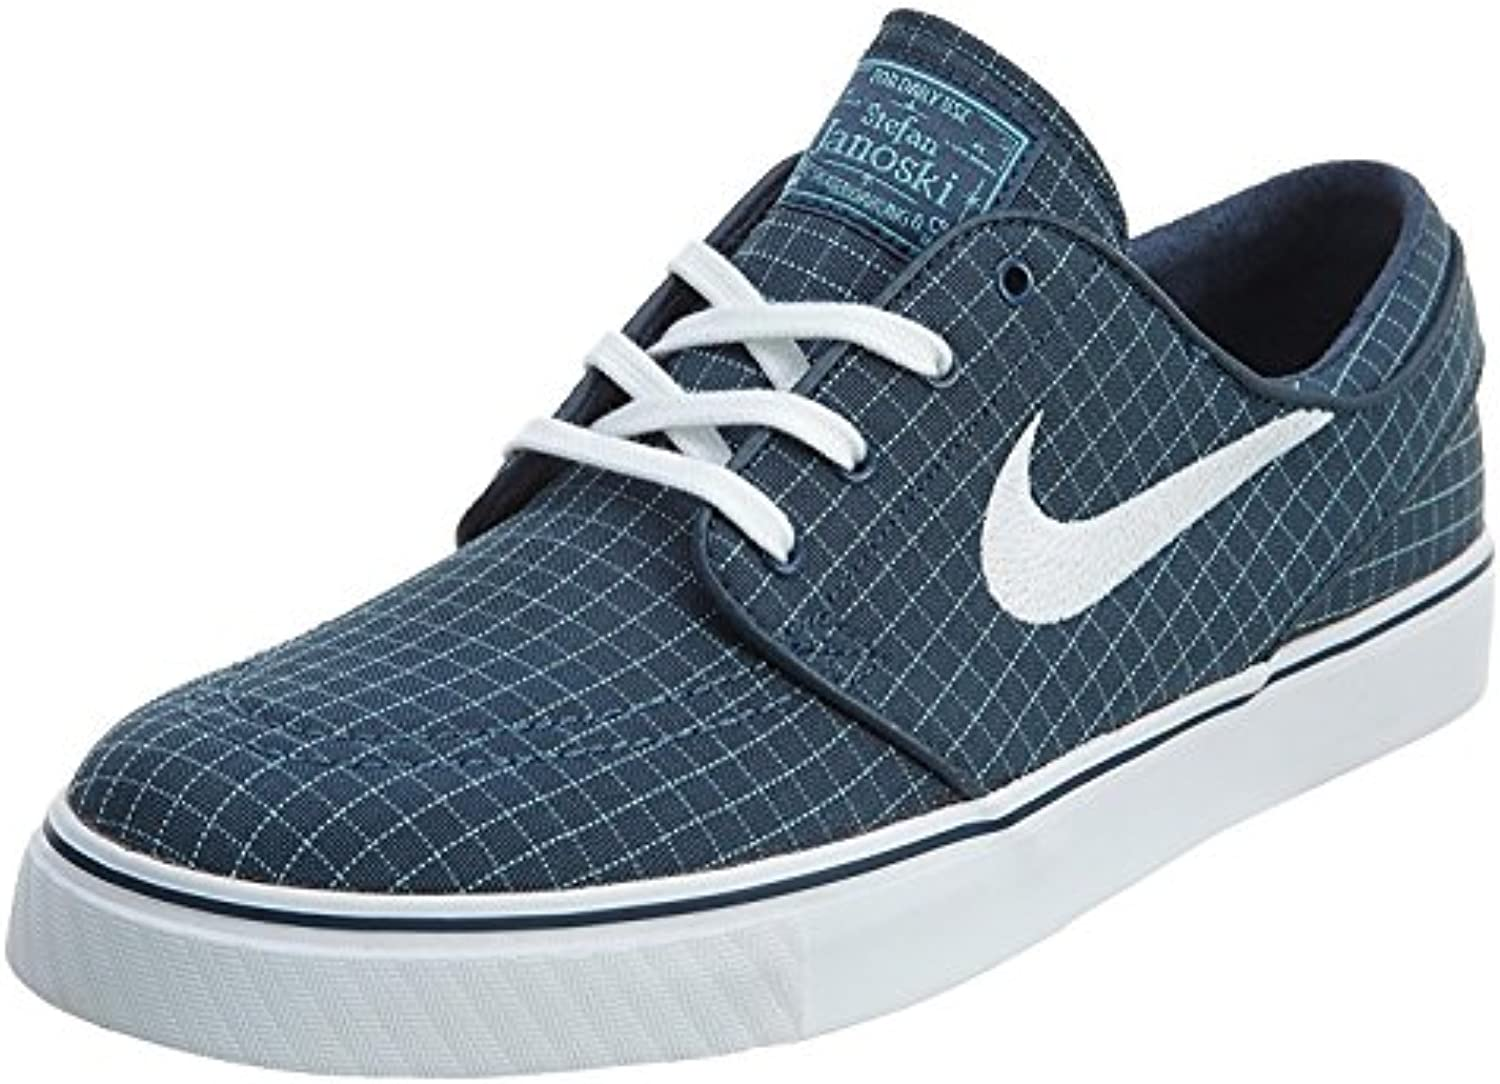 Nike Men'S Stefan Janoski Canvas Skate Shoe, Squadron Blue/White-TD Platinum Blue, 47.5 D(M) EU/12.5 D(M) UK